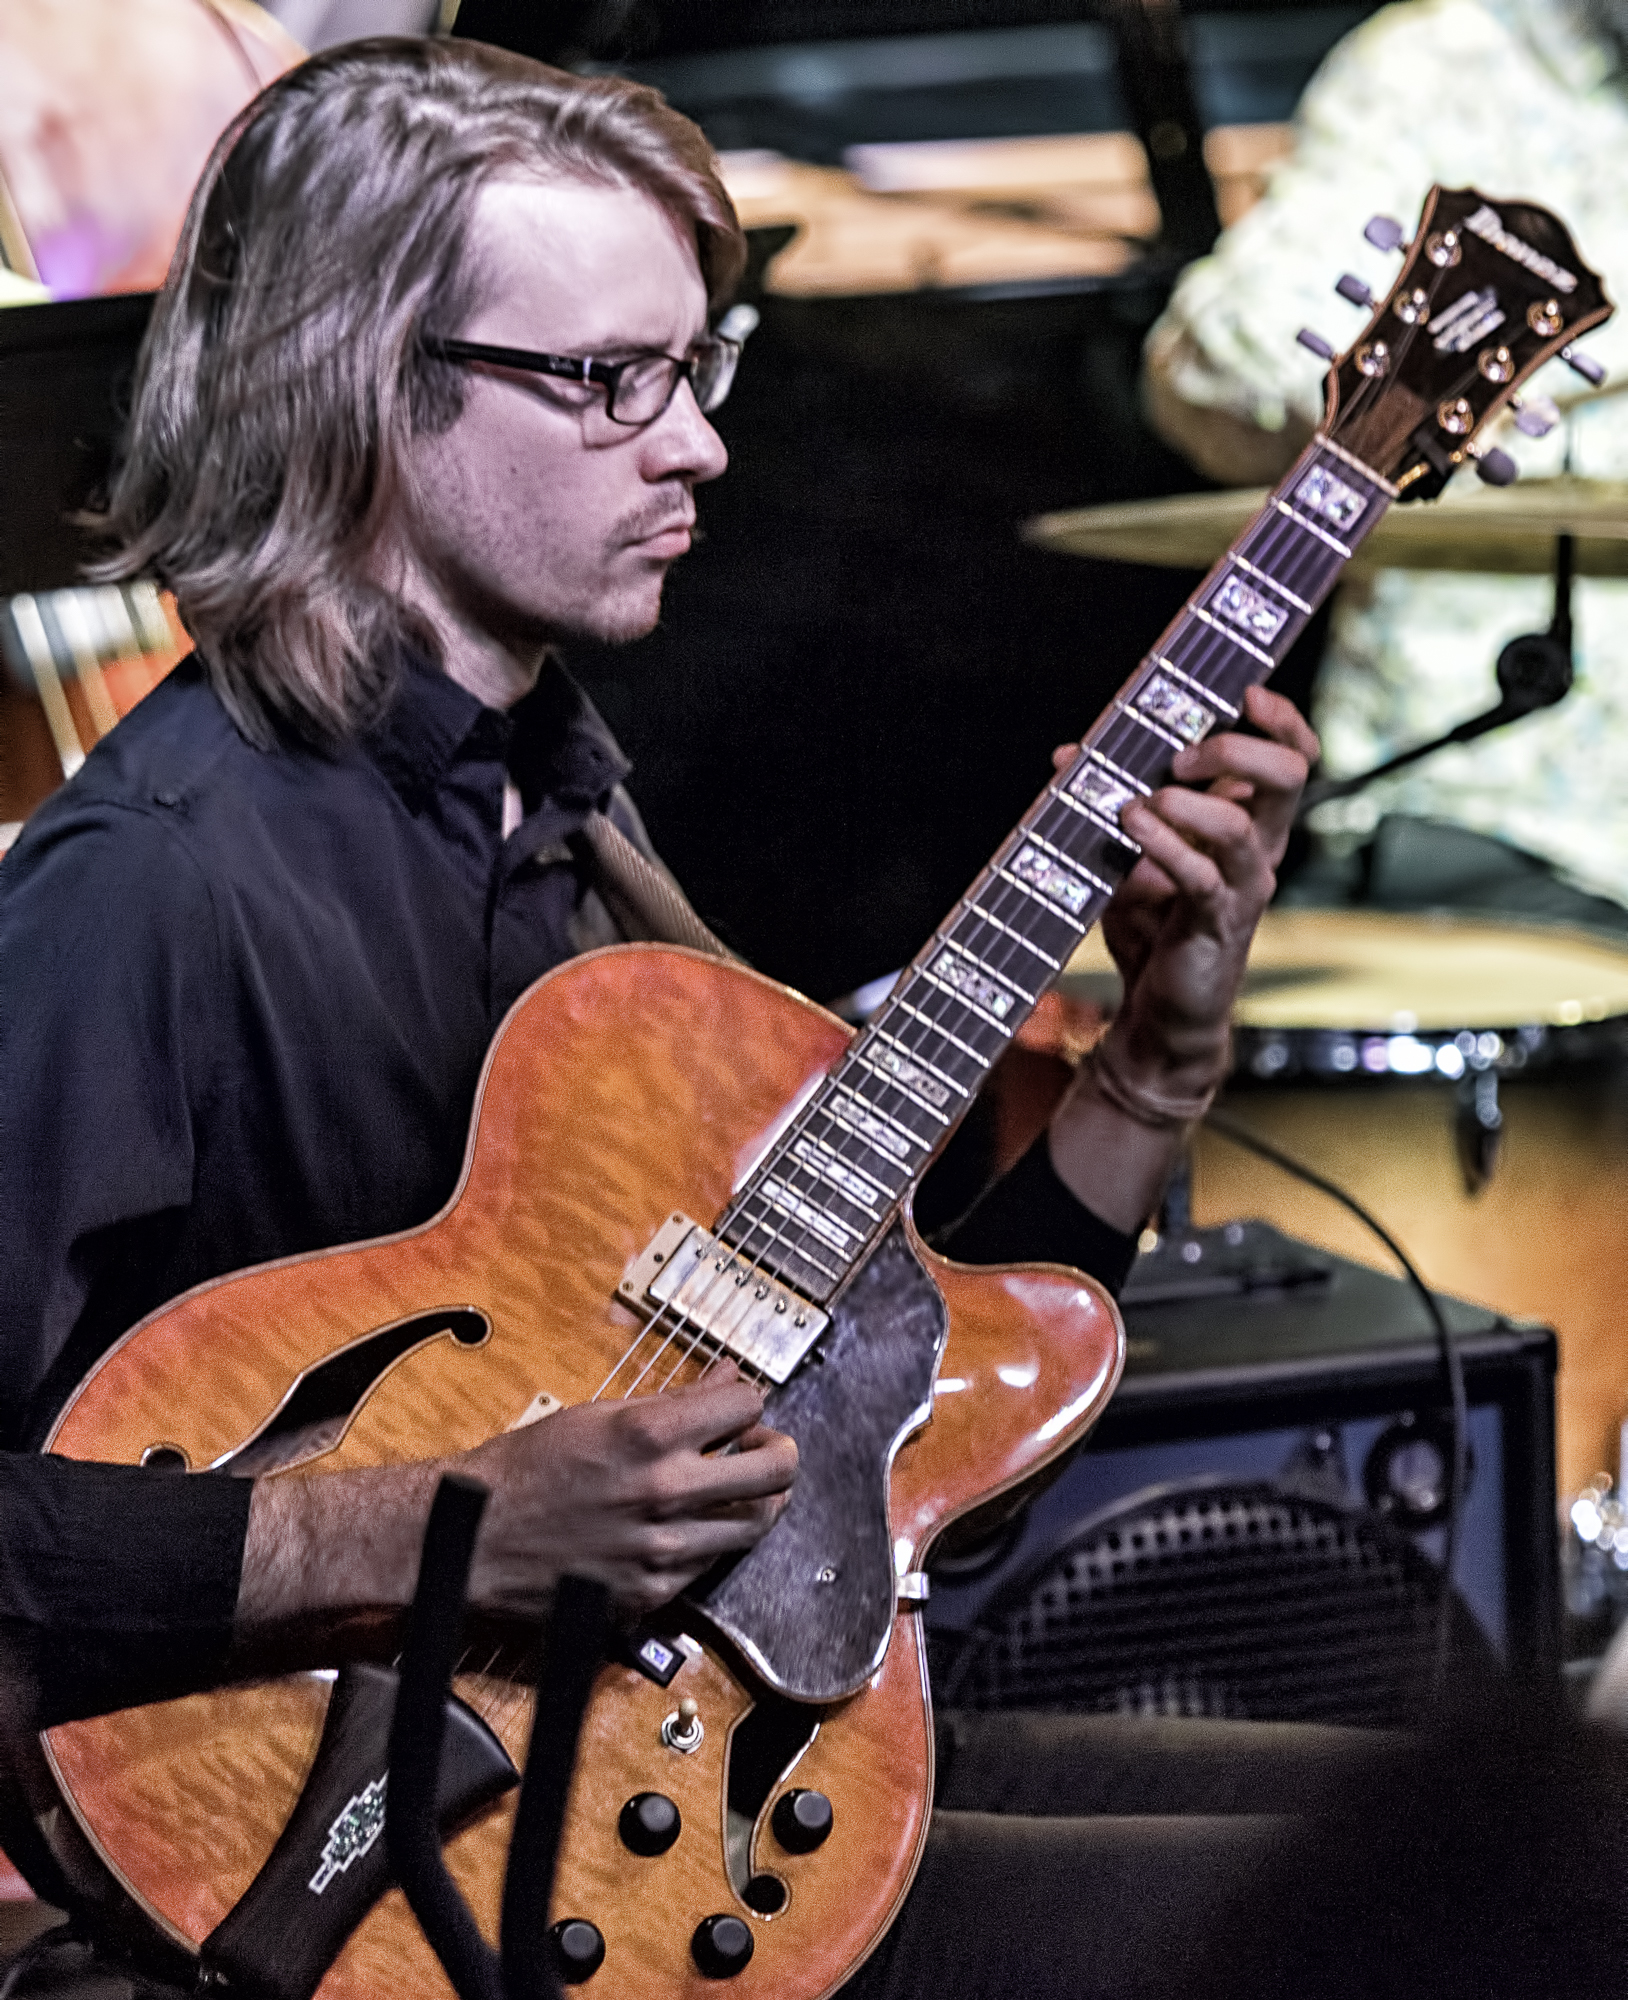 Reid Riddiough With Eric Rasmussen And Scottsdale Community College Jazz Orchestra Featuring John Hollenbeck At The Nash In Phoenix